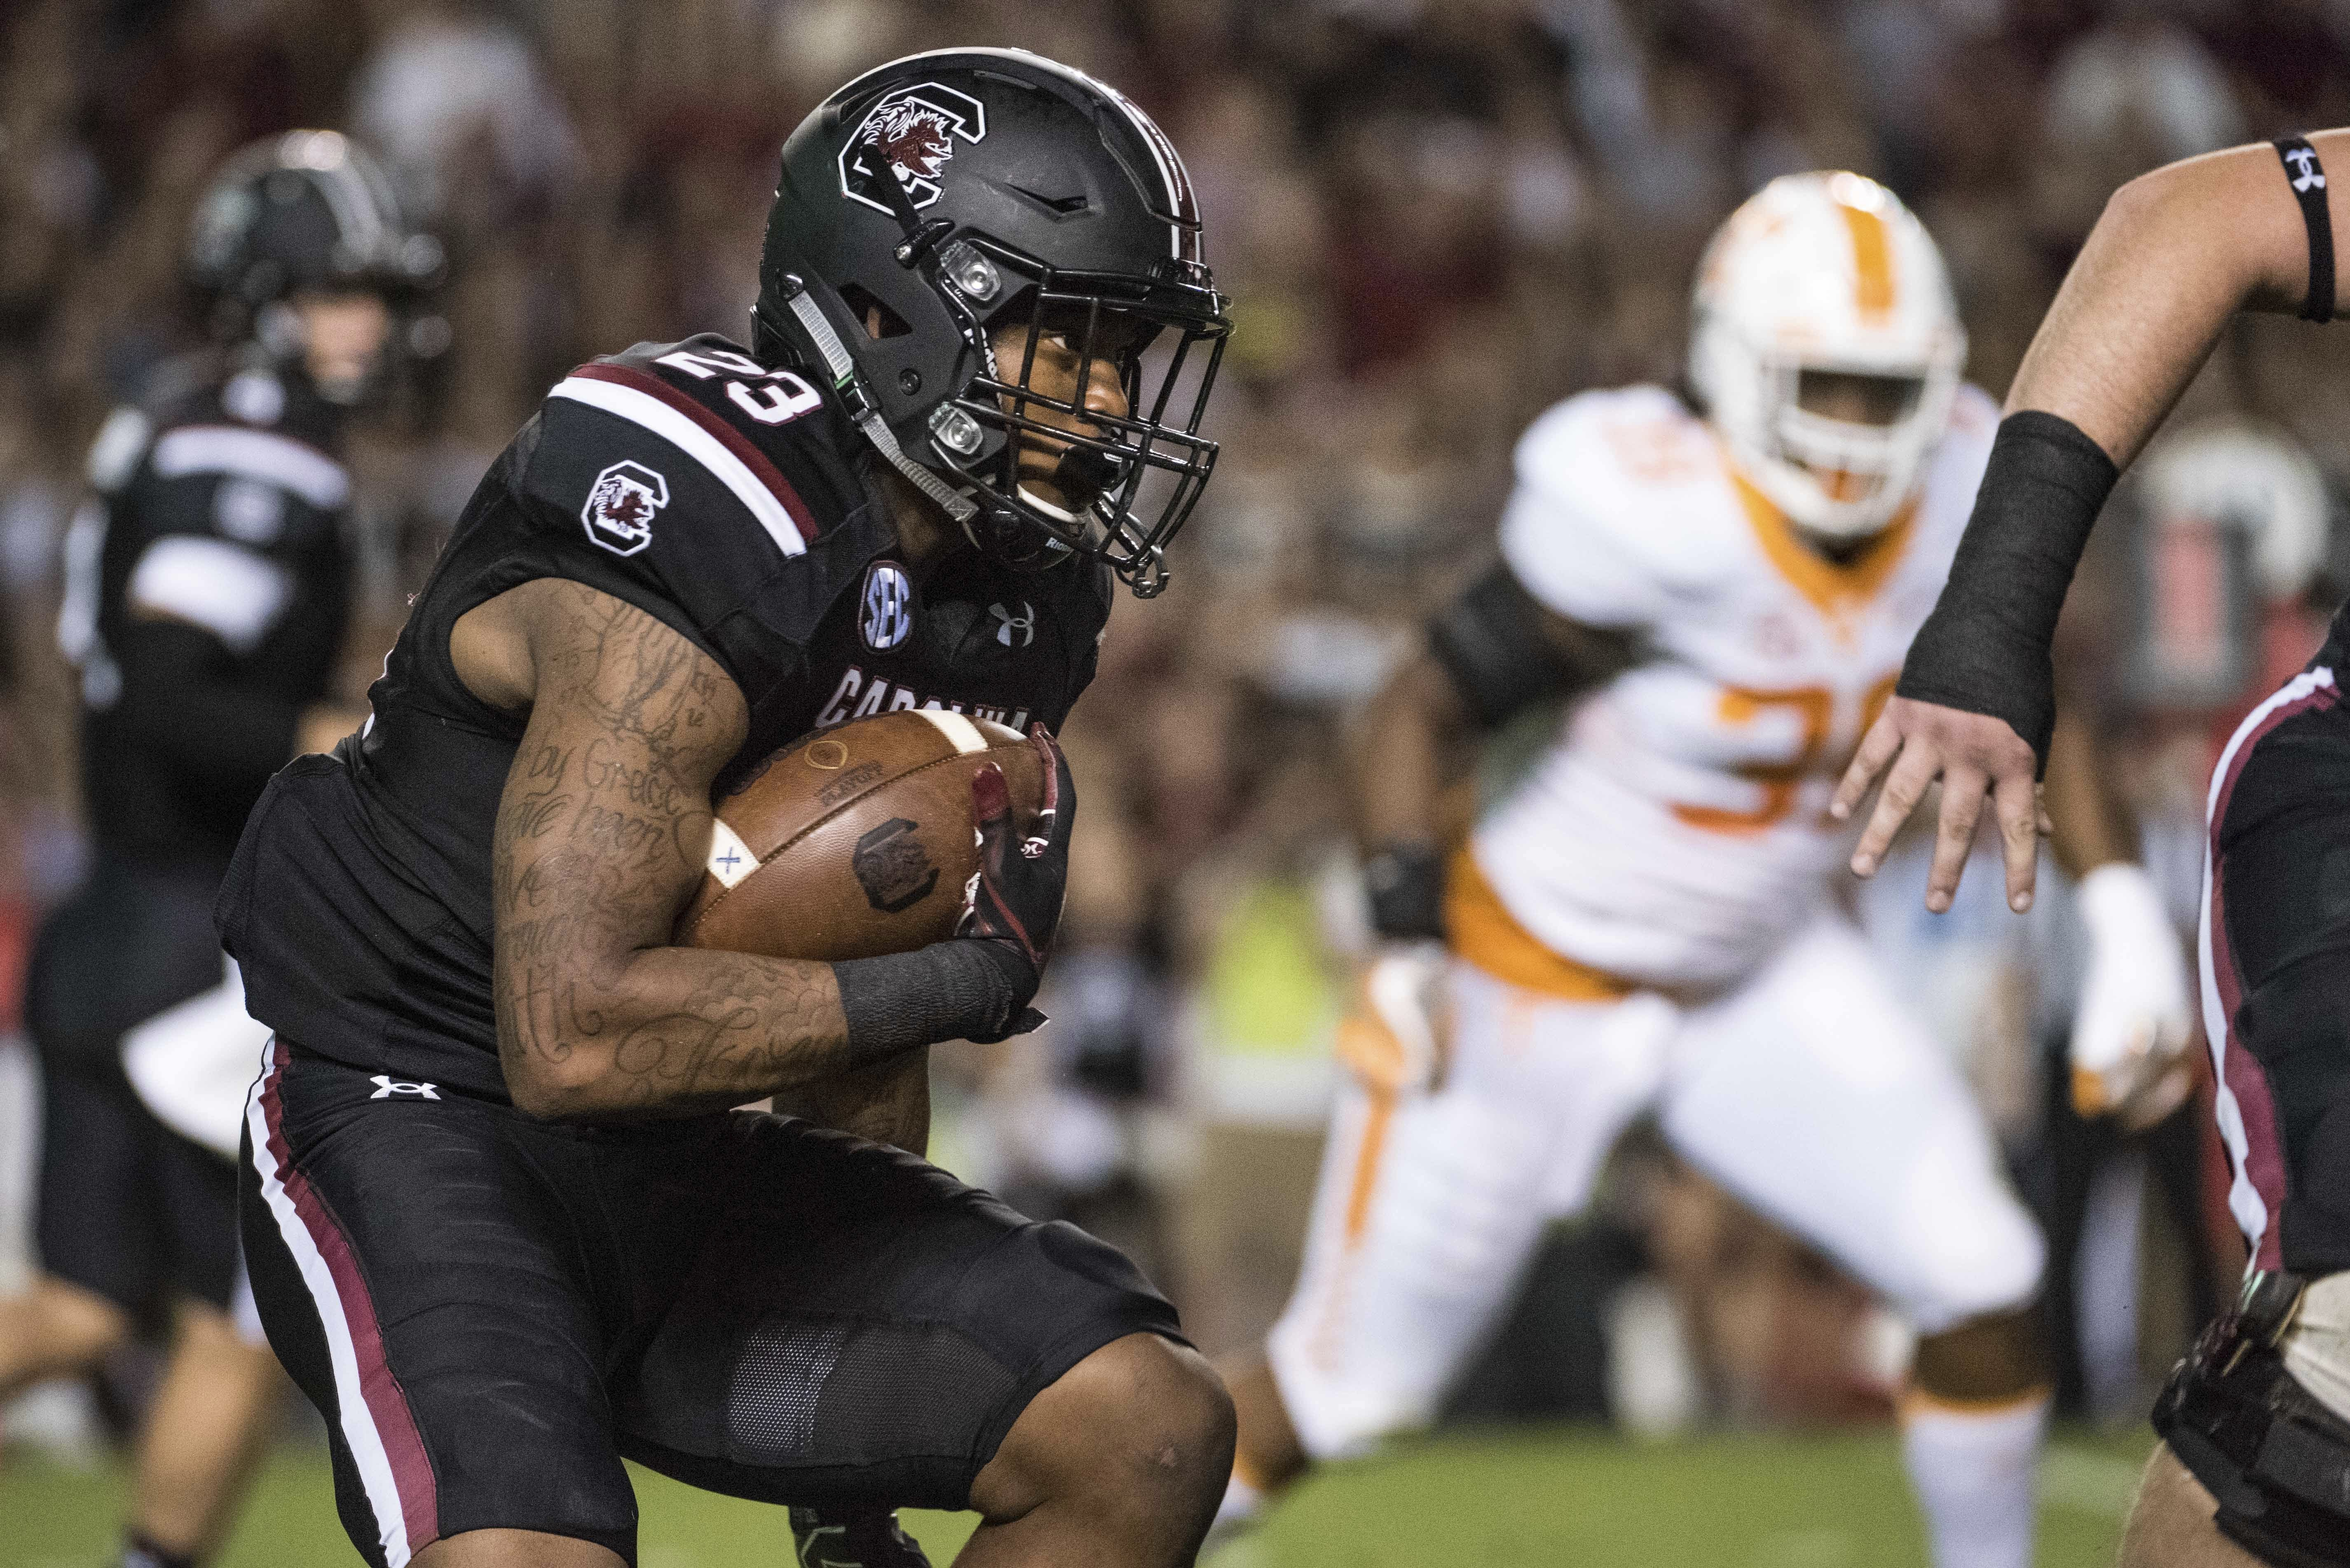 South Carolina running back Rico Dowdle runs the ball (23) during the first half of an NCAA college football game against Tennessee Saturday, Oct. 29, 2016, in Columbia, S.C. (AP Photo/Sean Rayford)